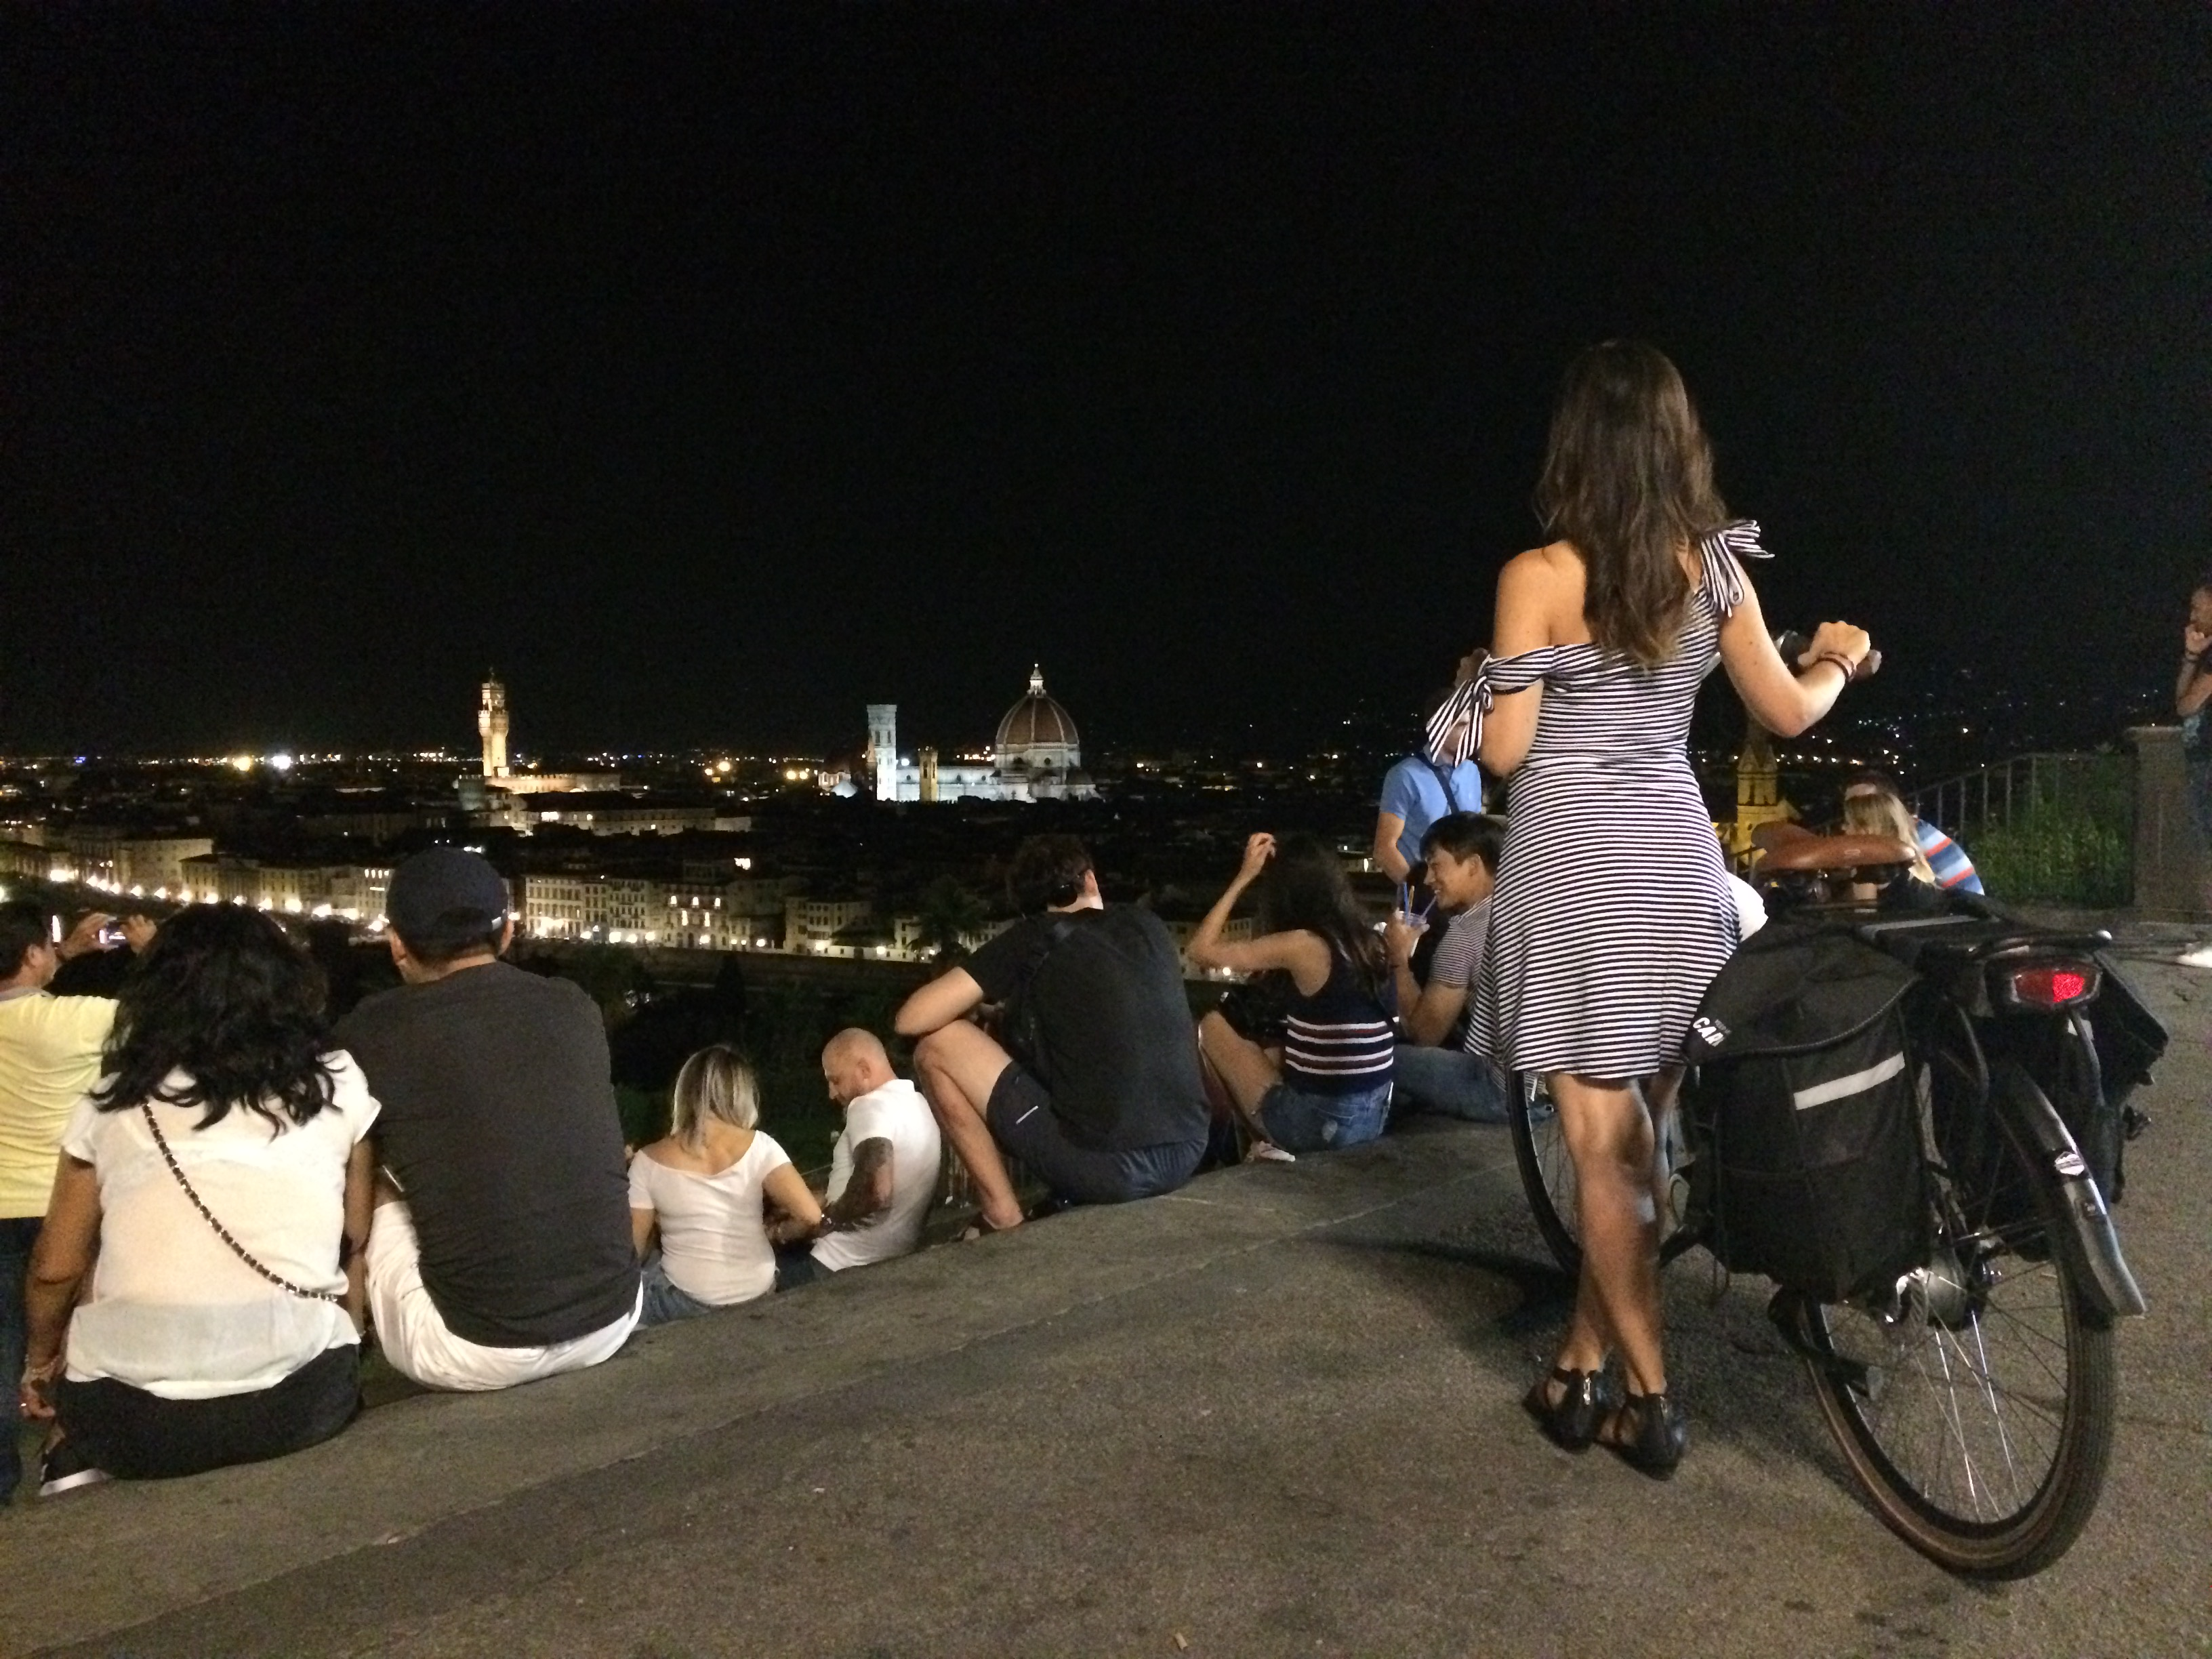 Piazzale Michelangelo at night